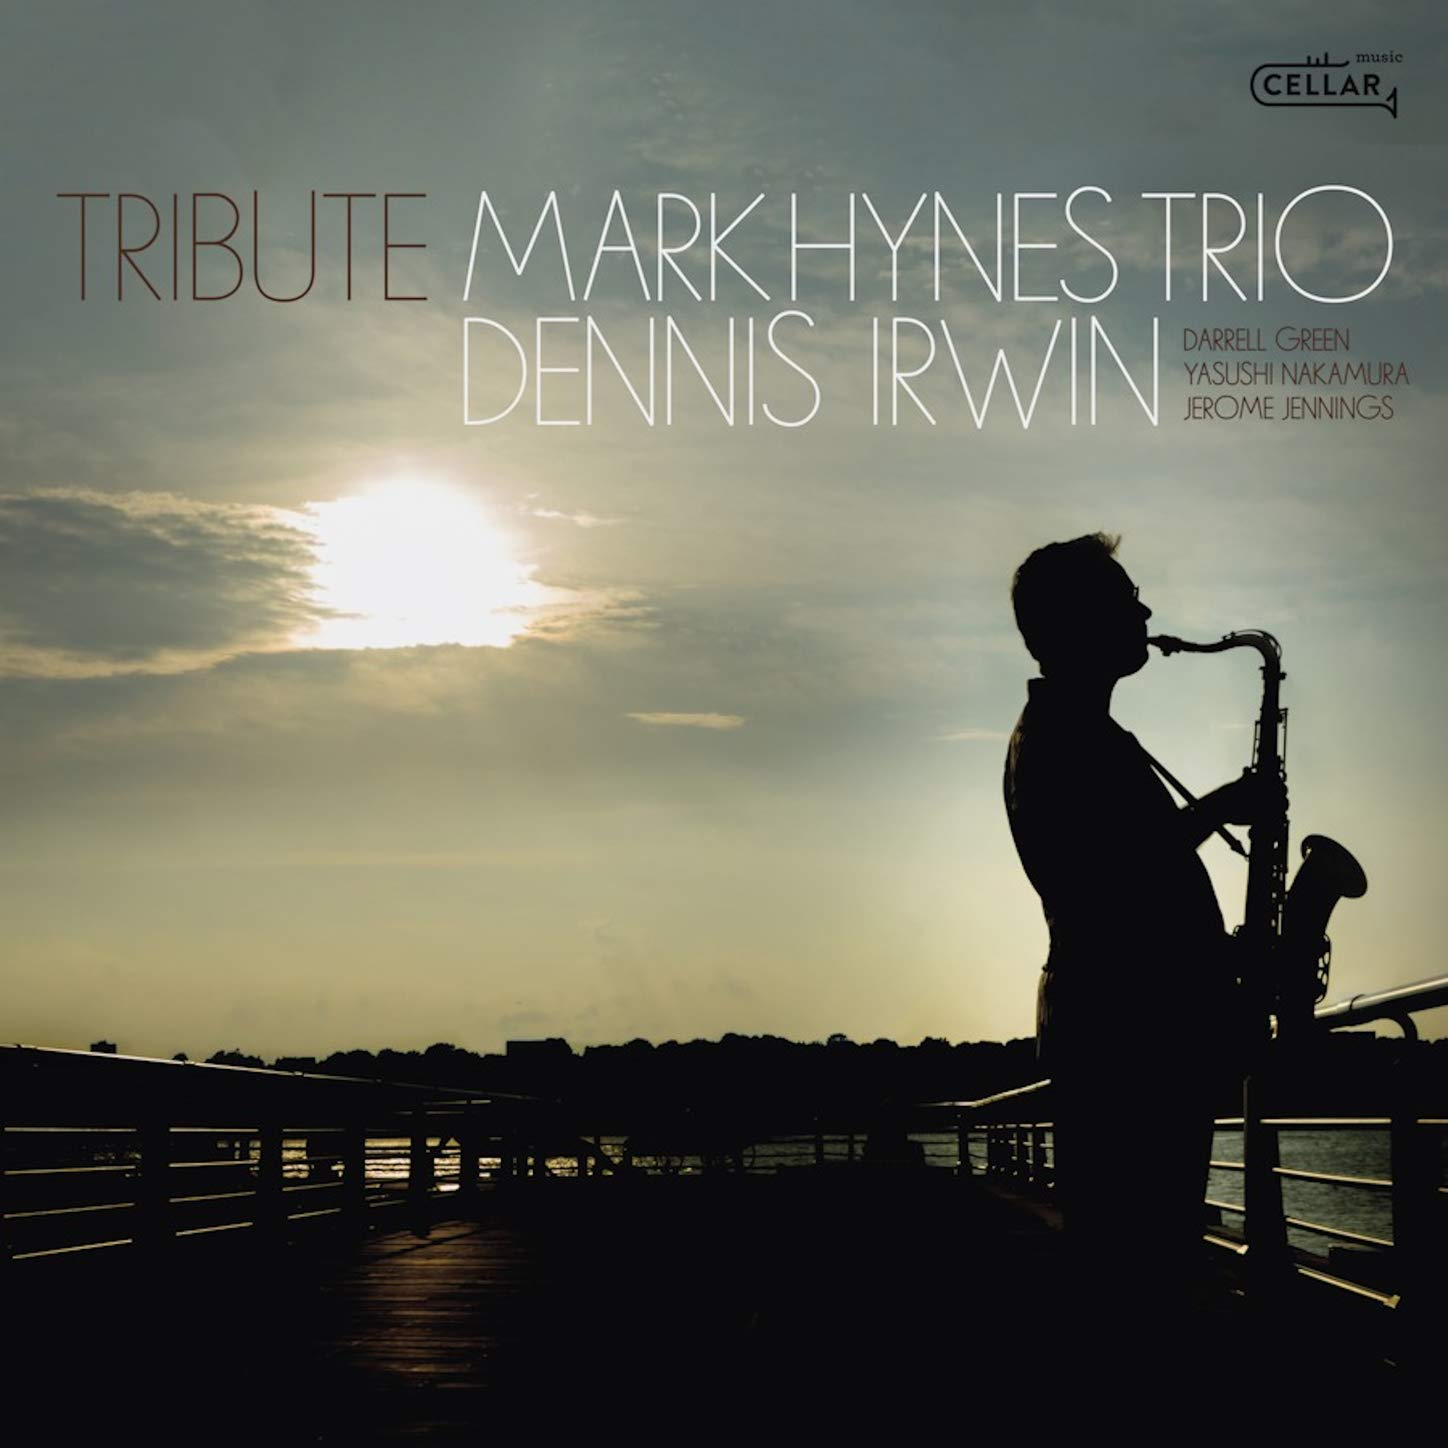 Mark Hynes Trio featuring Dennis Irwin-Tribute-(CM050120)-CD-FLAC-2020-HOUND